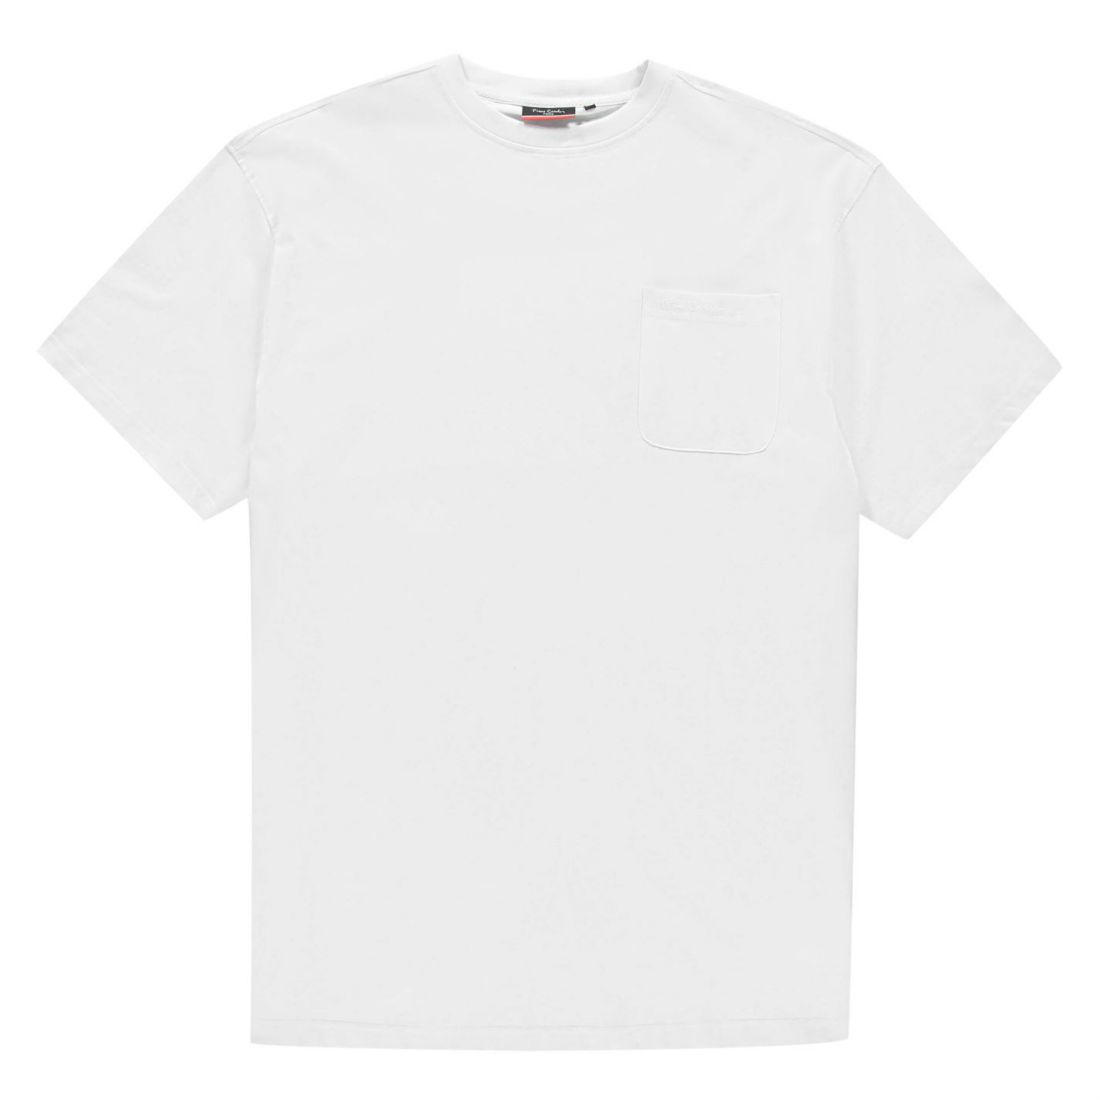 Pierre-Cardin-Mens-ExtraLarge-Single-Pocket-T-Shirt-Crew-Neck-Tee-Top-Short thumbnail 7